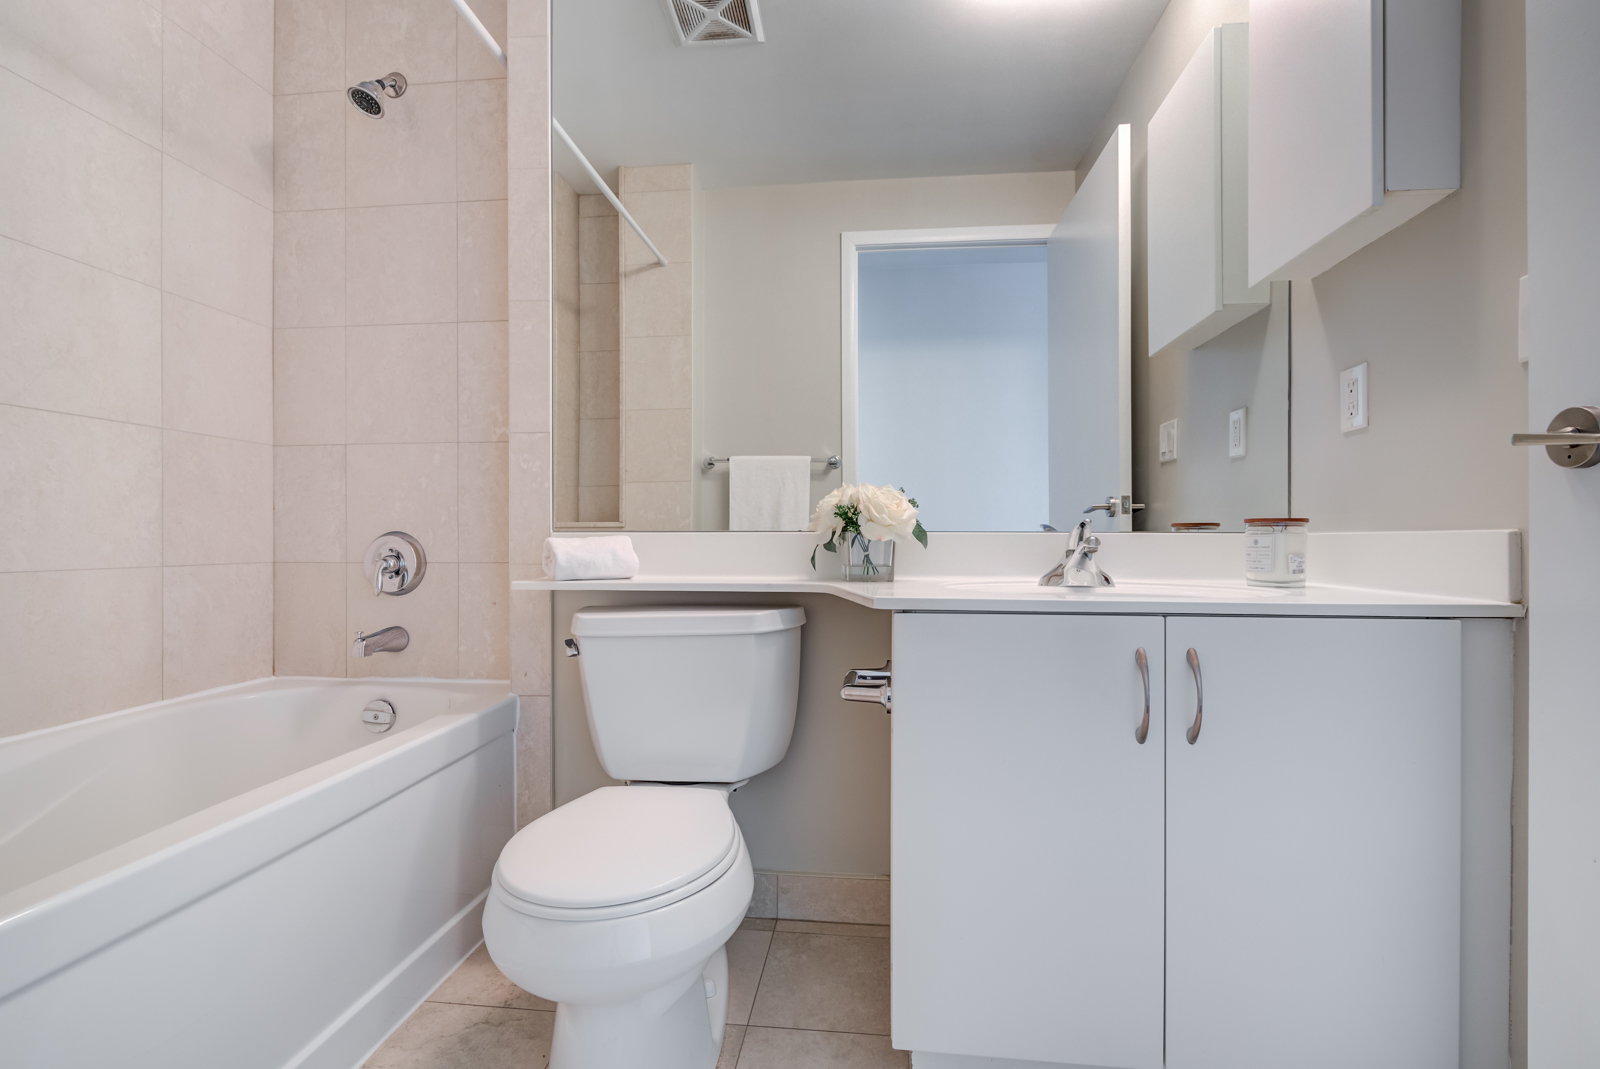 215 Fort York Blvd ensuite bath with white toilet, tub, sink, cabinets and huge mirror.